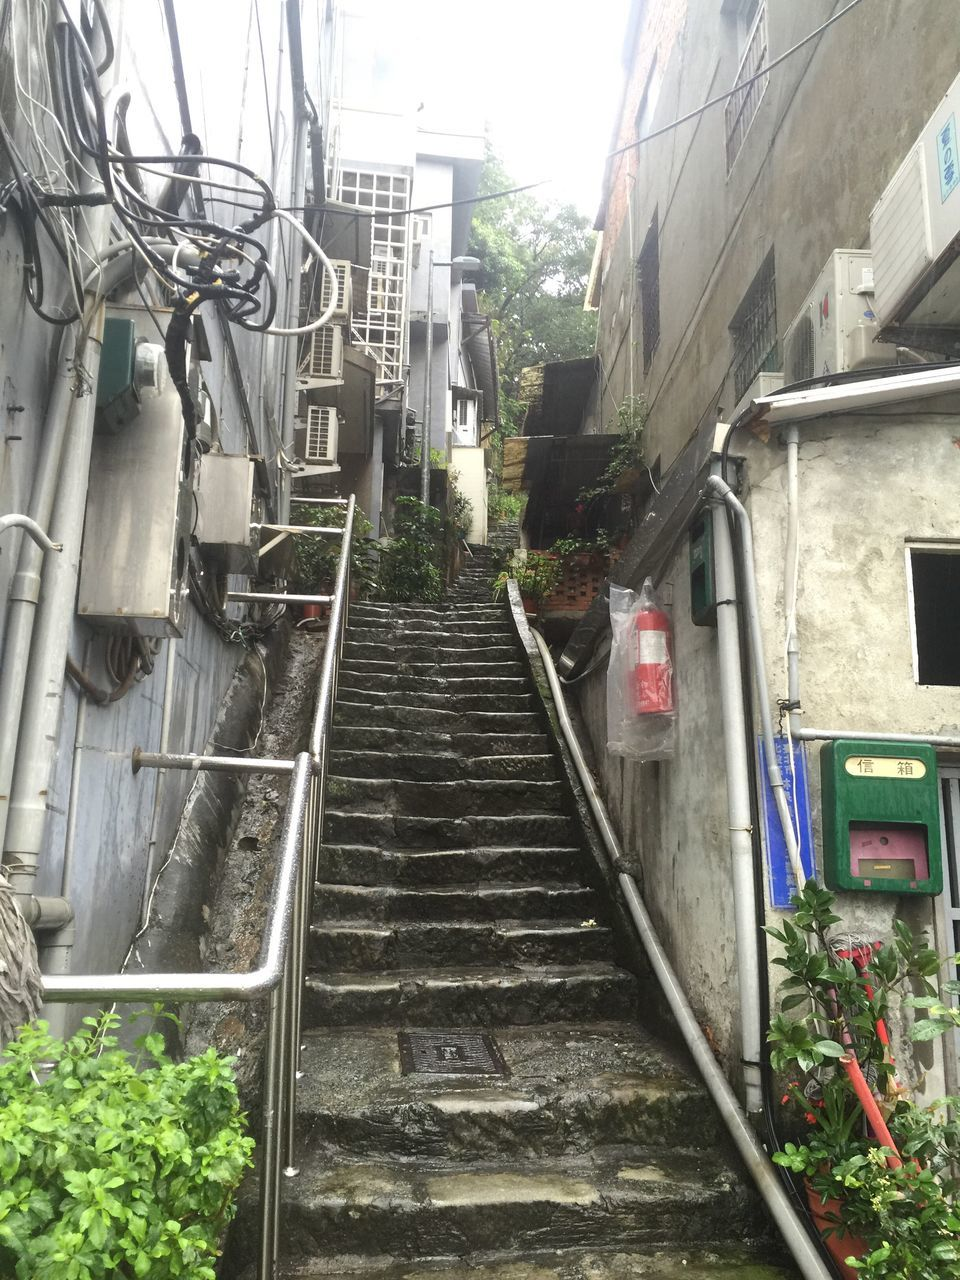 architecture, built structure, building exterior, staircase, steps, steps and staircases, no people, day, outdoors, city